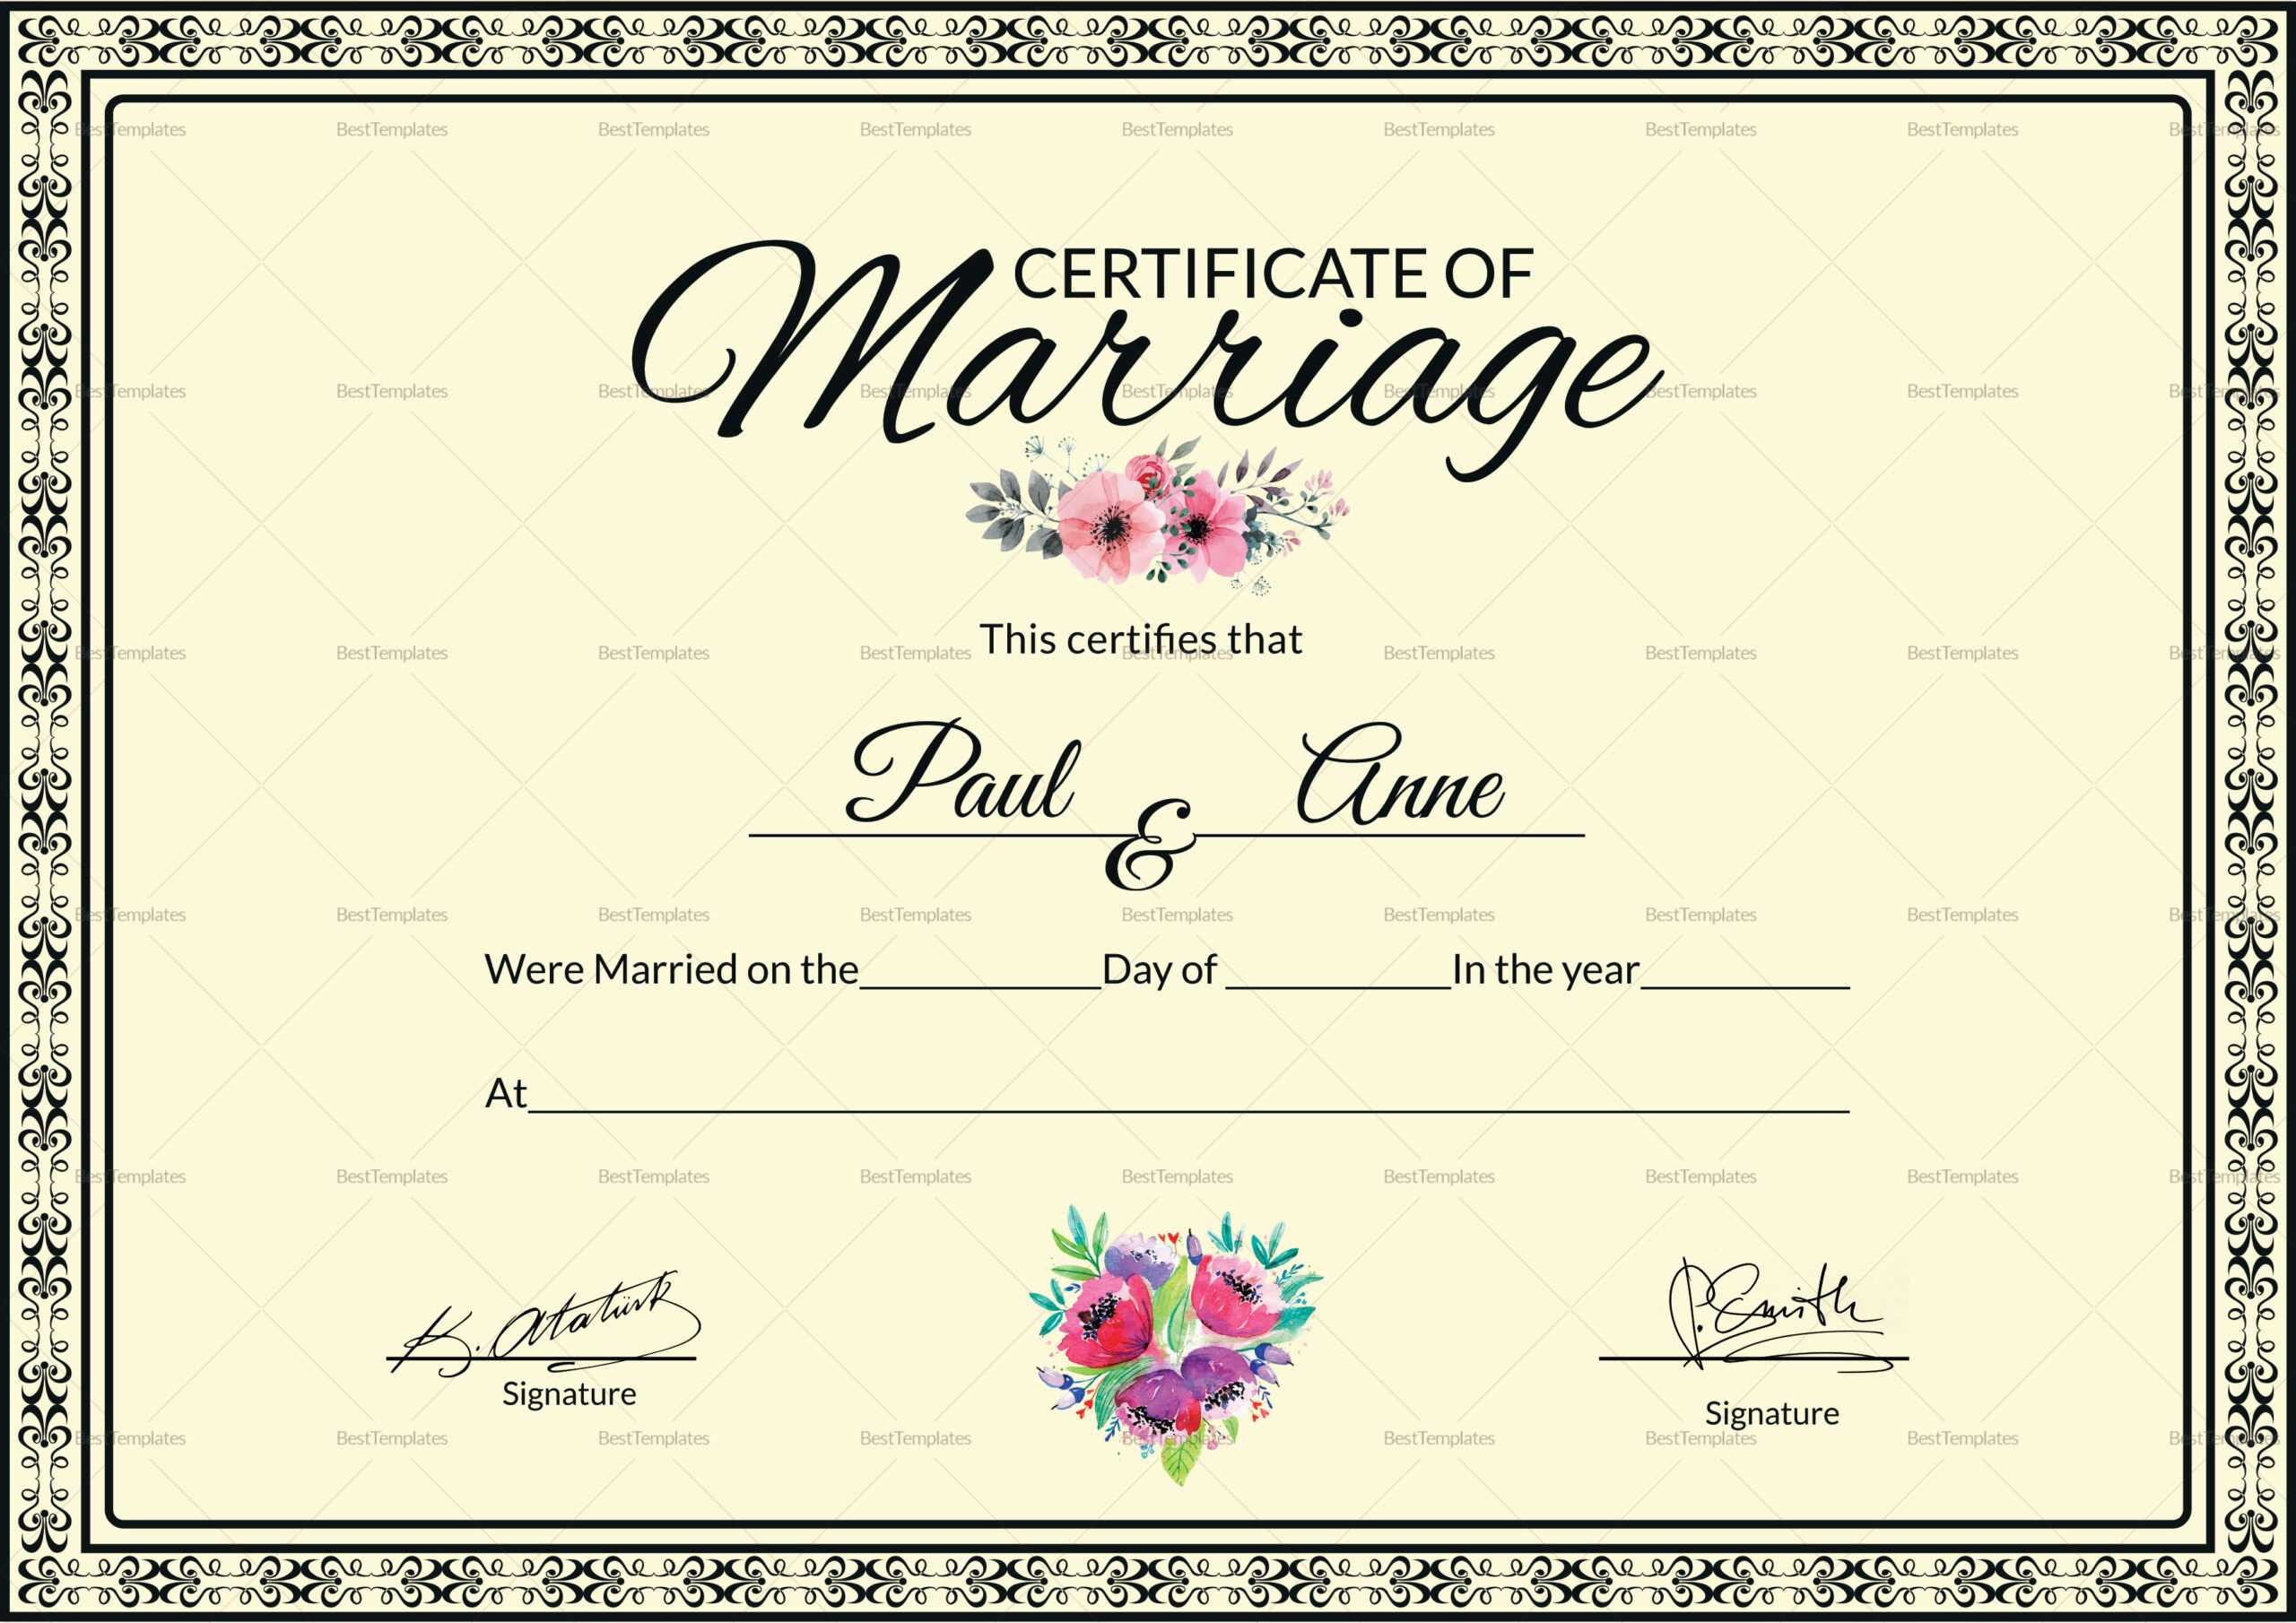 002 Template Ideas Certificate Of Marriage Beautiful Within Certificate Of Marriage Template